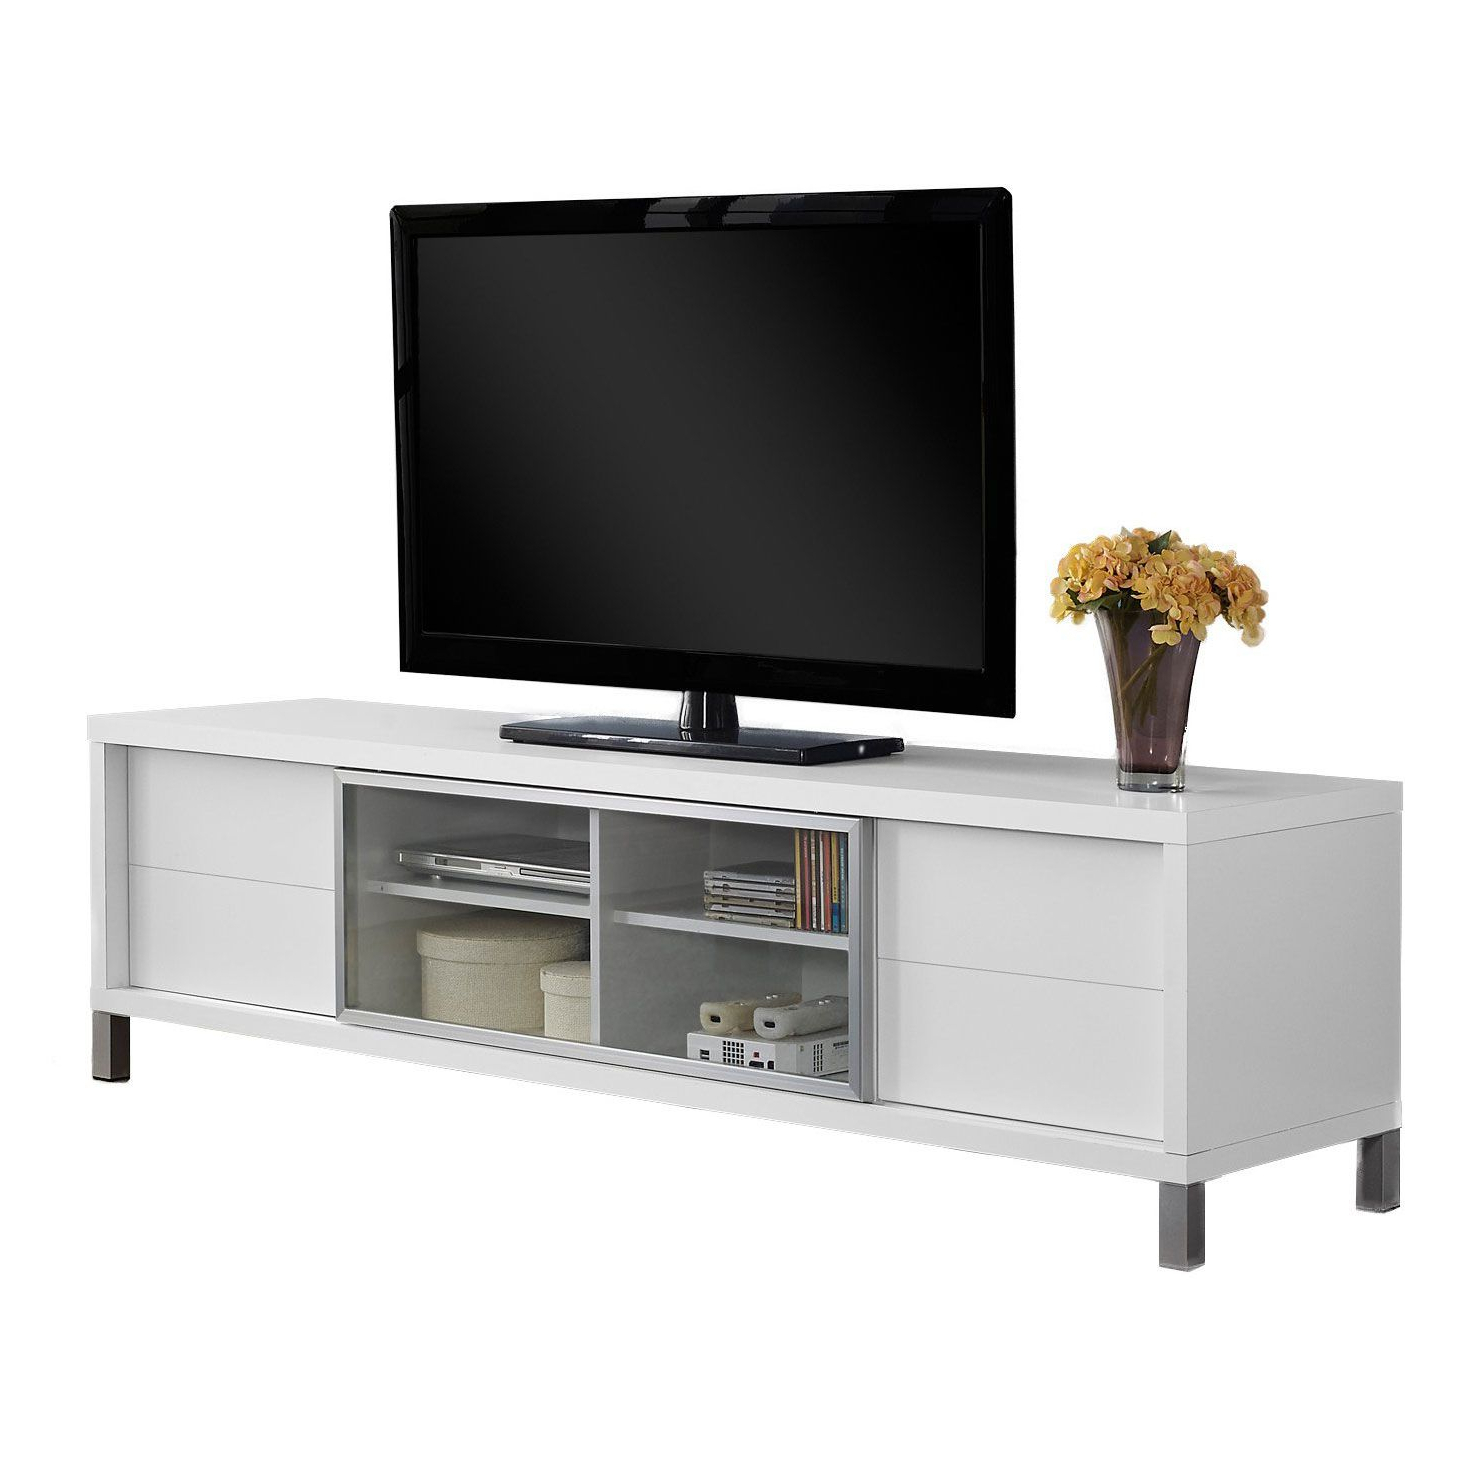 """Monarch Tv Stand White Euro Style For Tvs Up To 70""""l With Regard To Kinsella Tv Stands For Tvs Up To 70"""" (View 4 of 20)"""